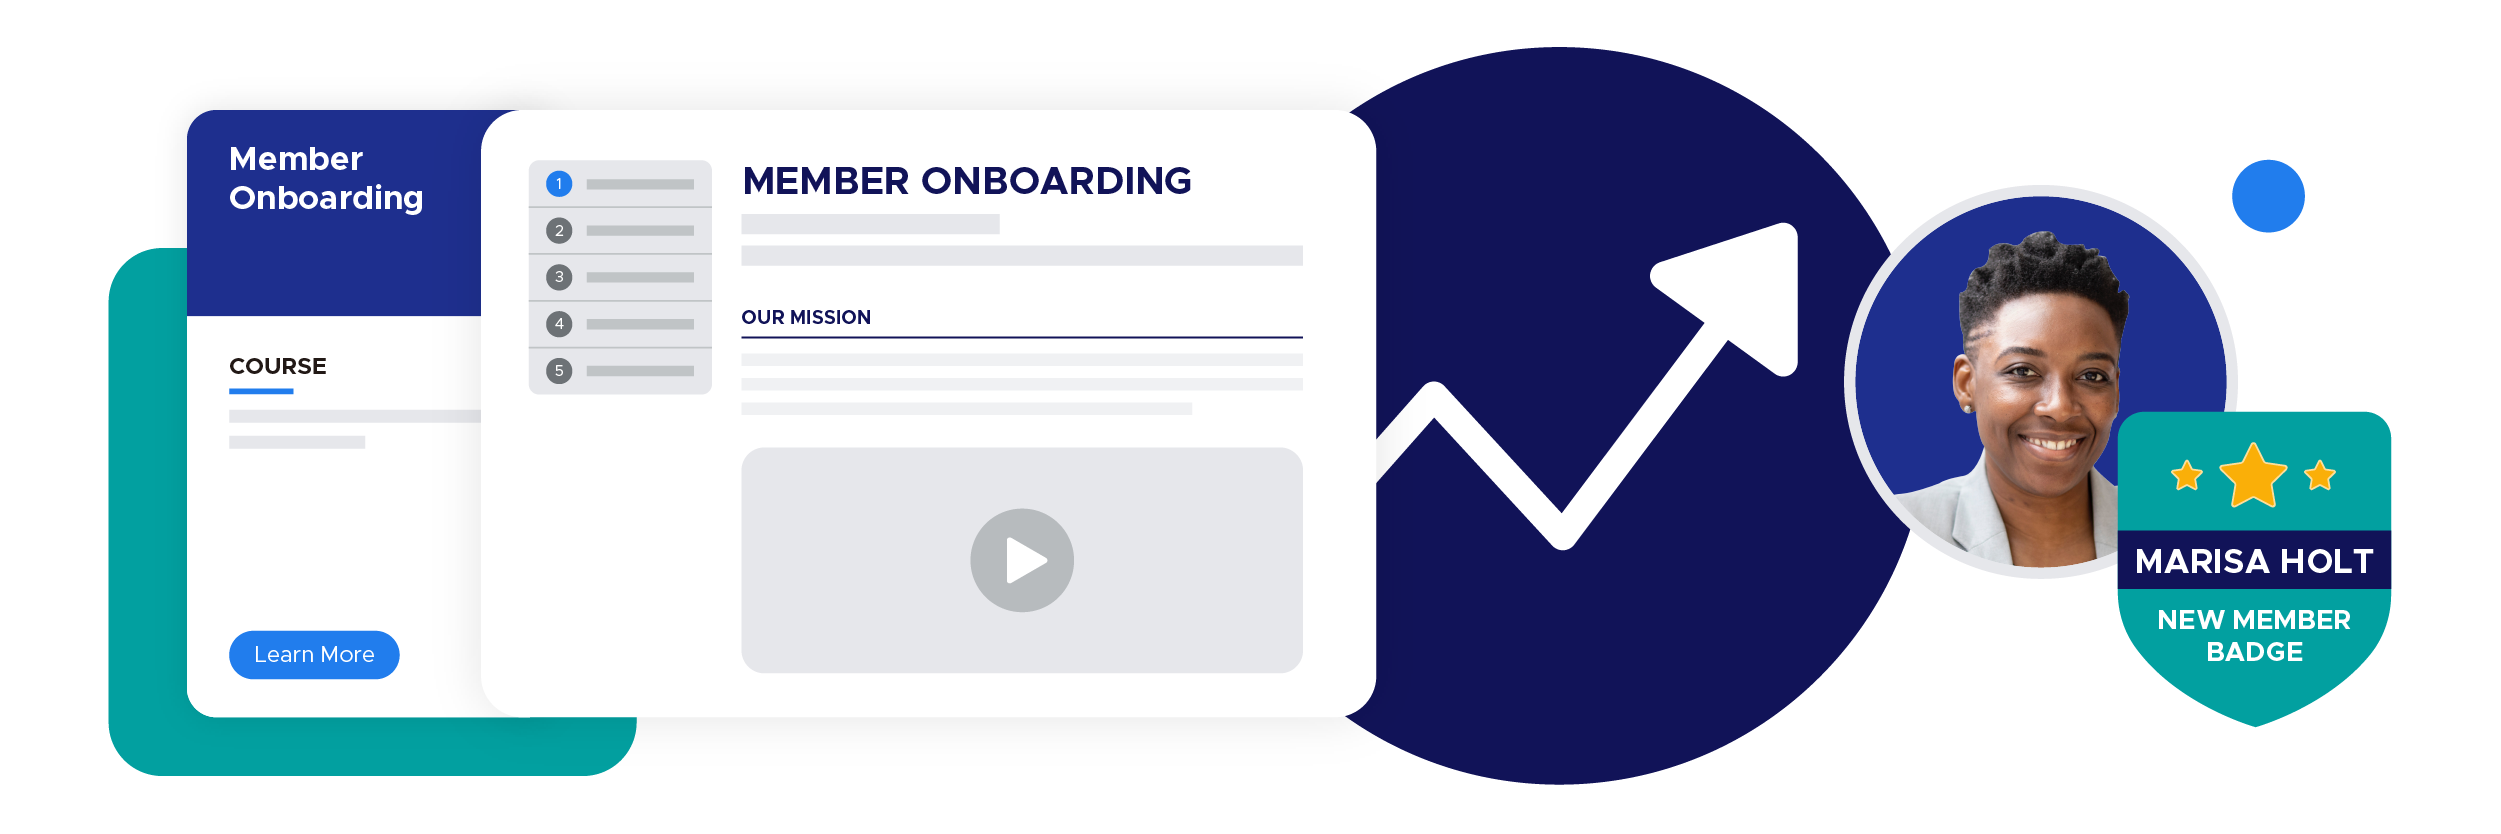 Illustration of a member onboarding course with a new member digital badge